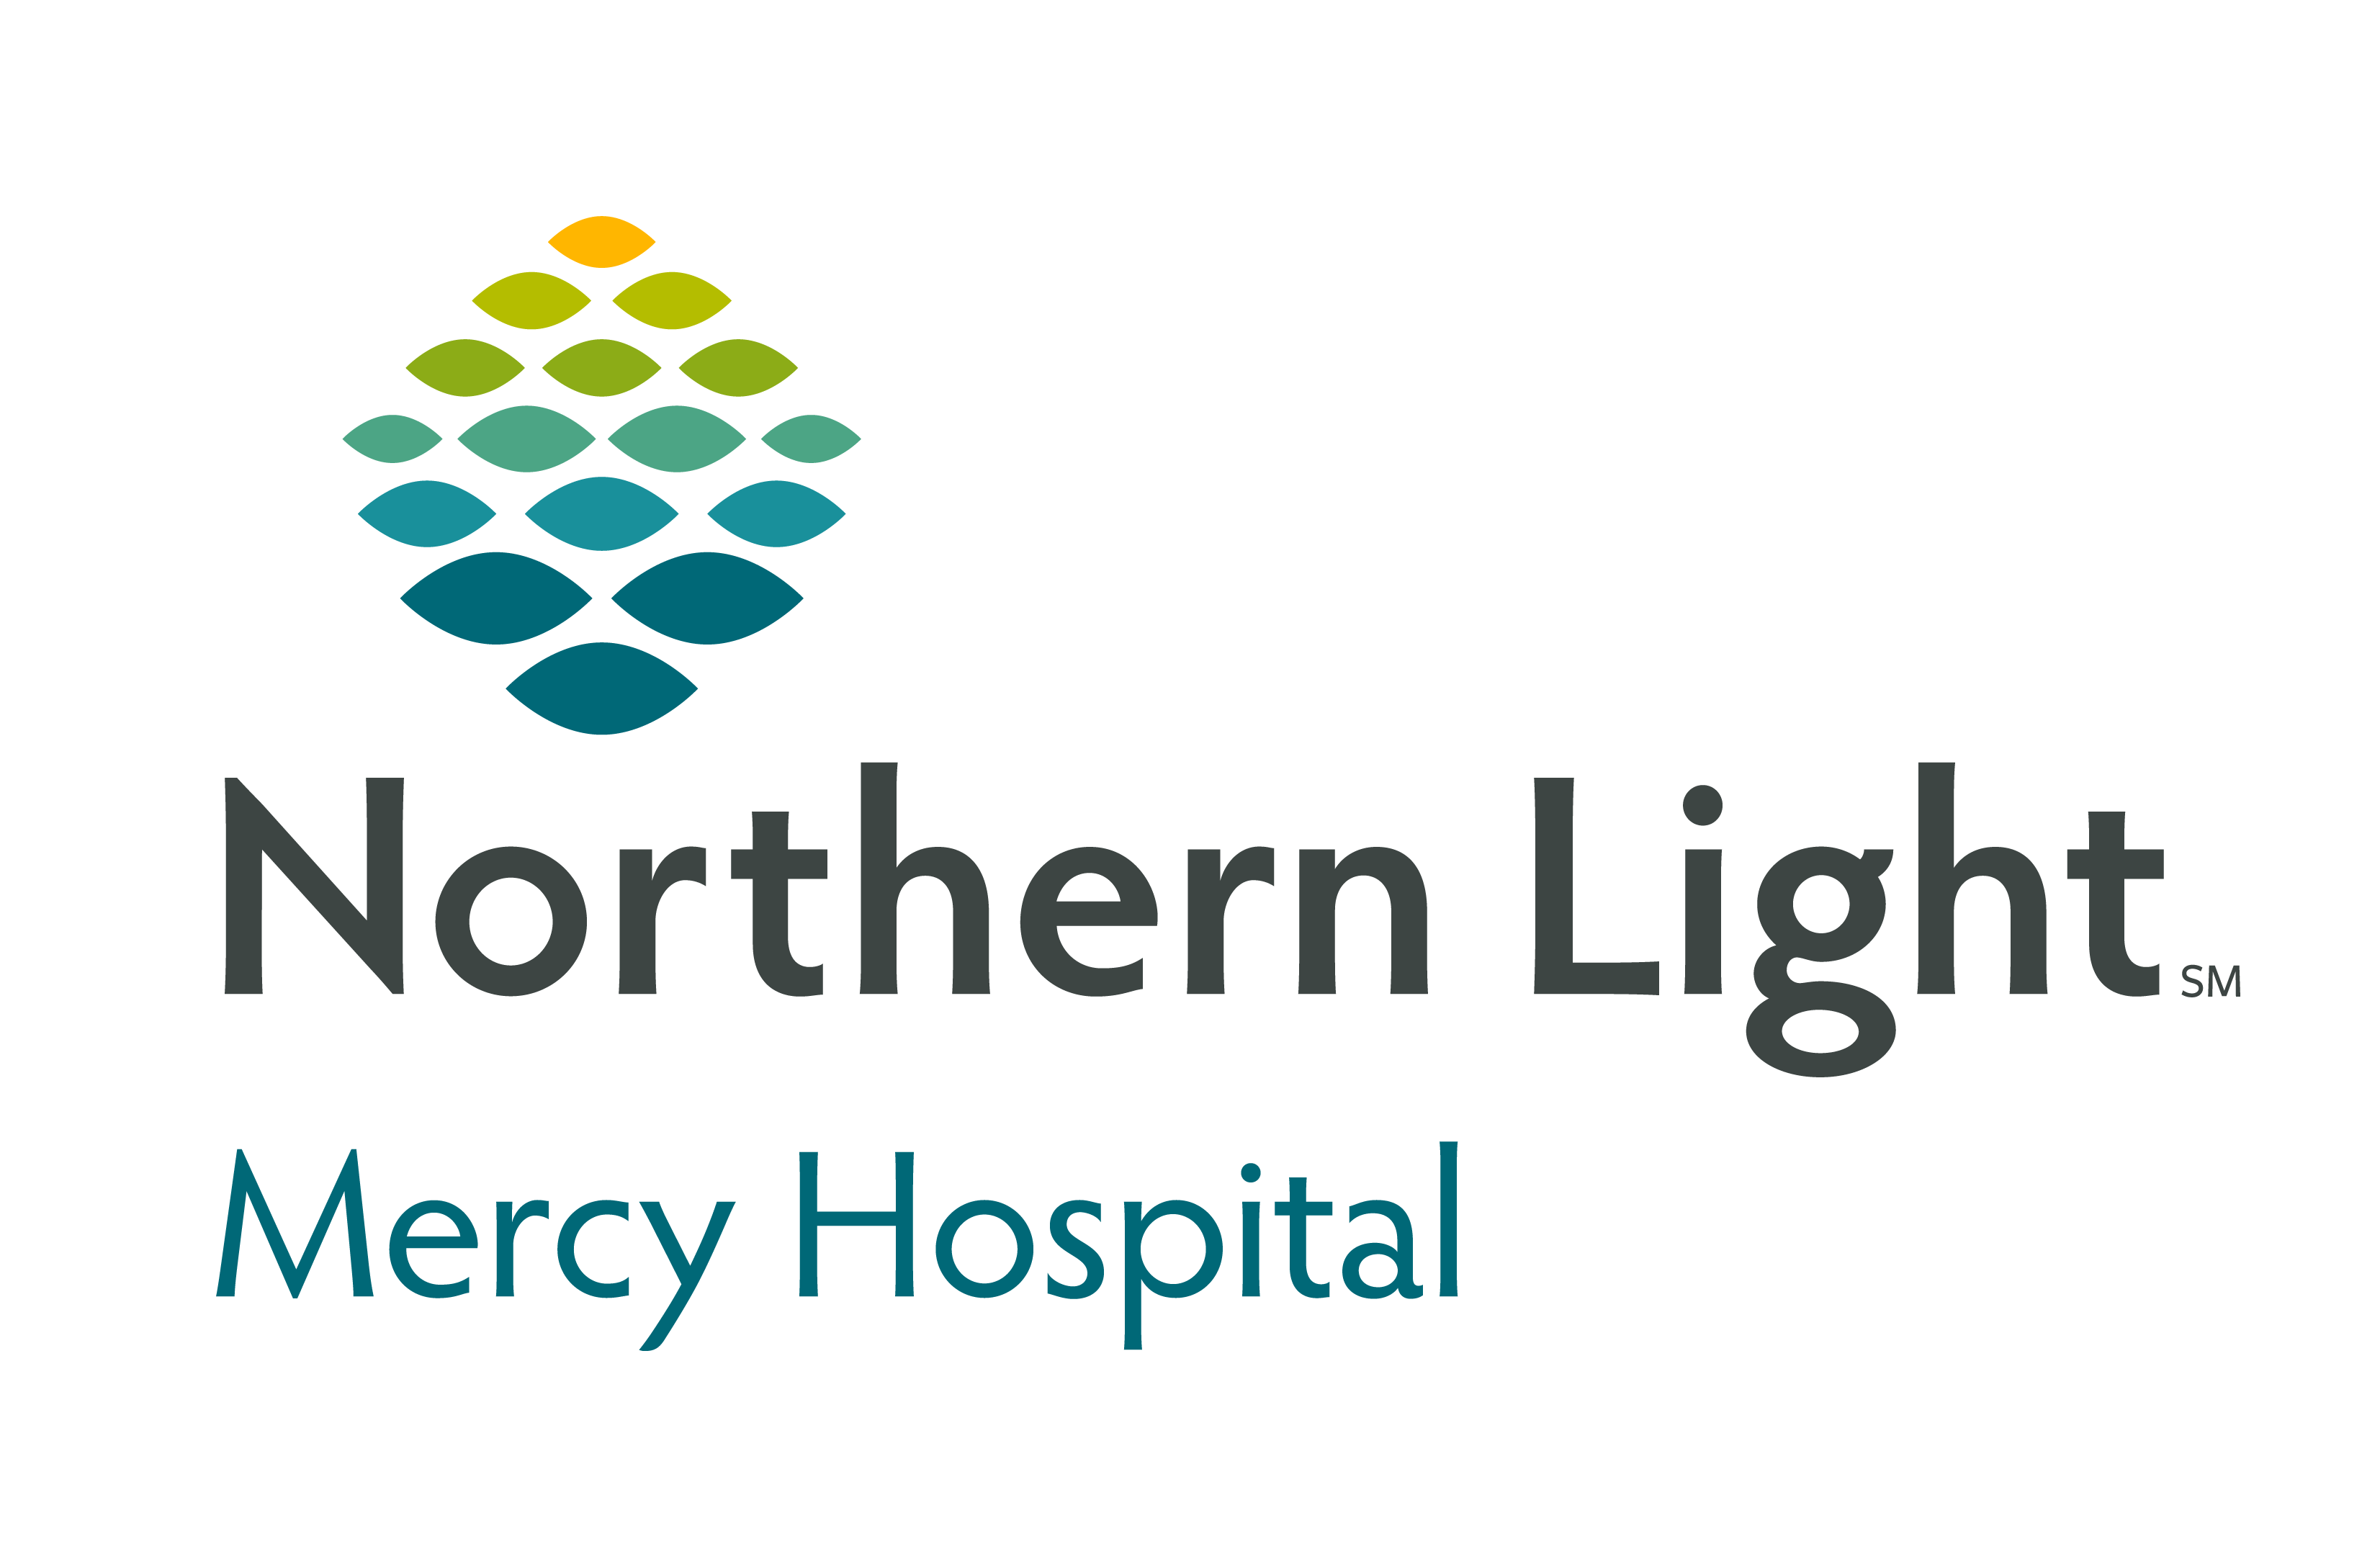 Non-Invasive Cardiologist In Portland, ME - Northern Light Mercy Hospital